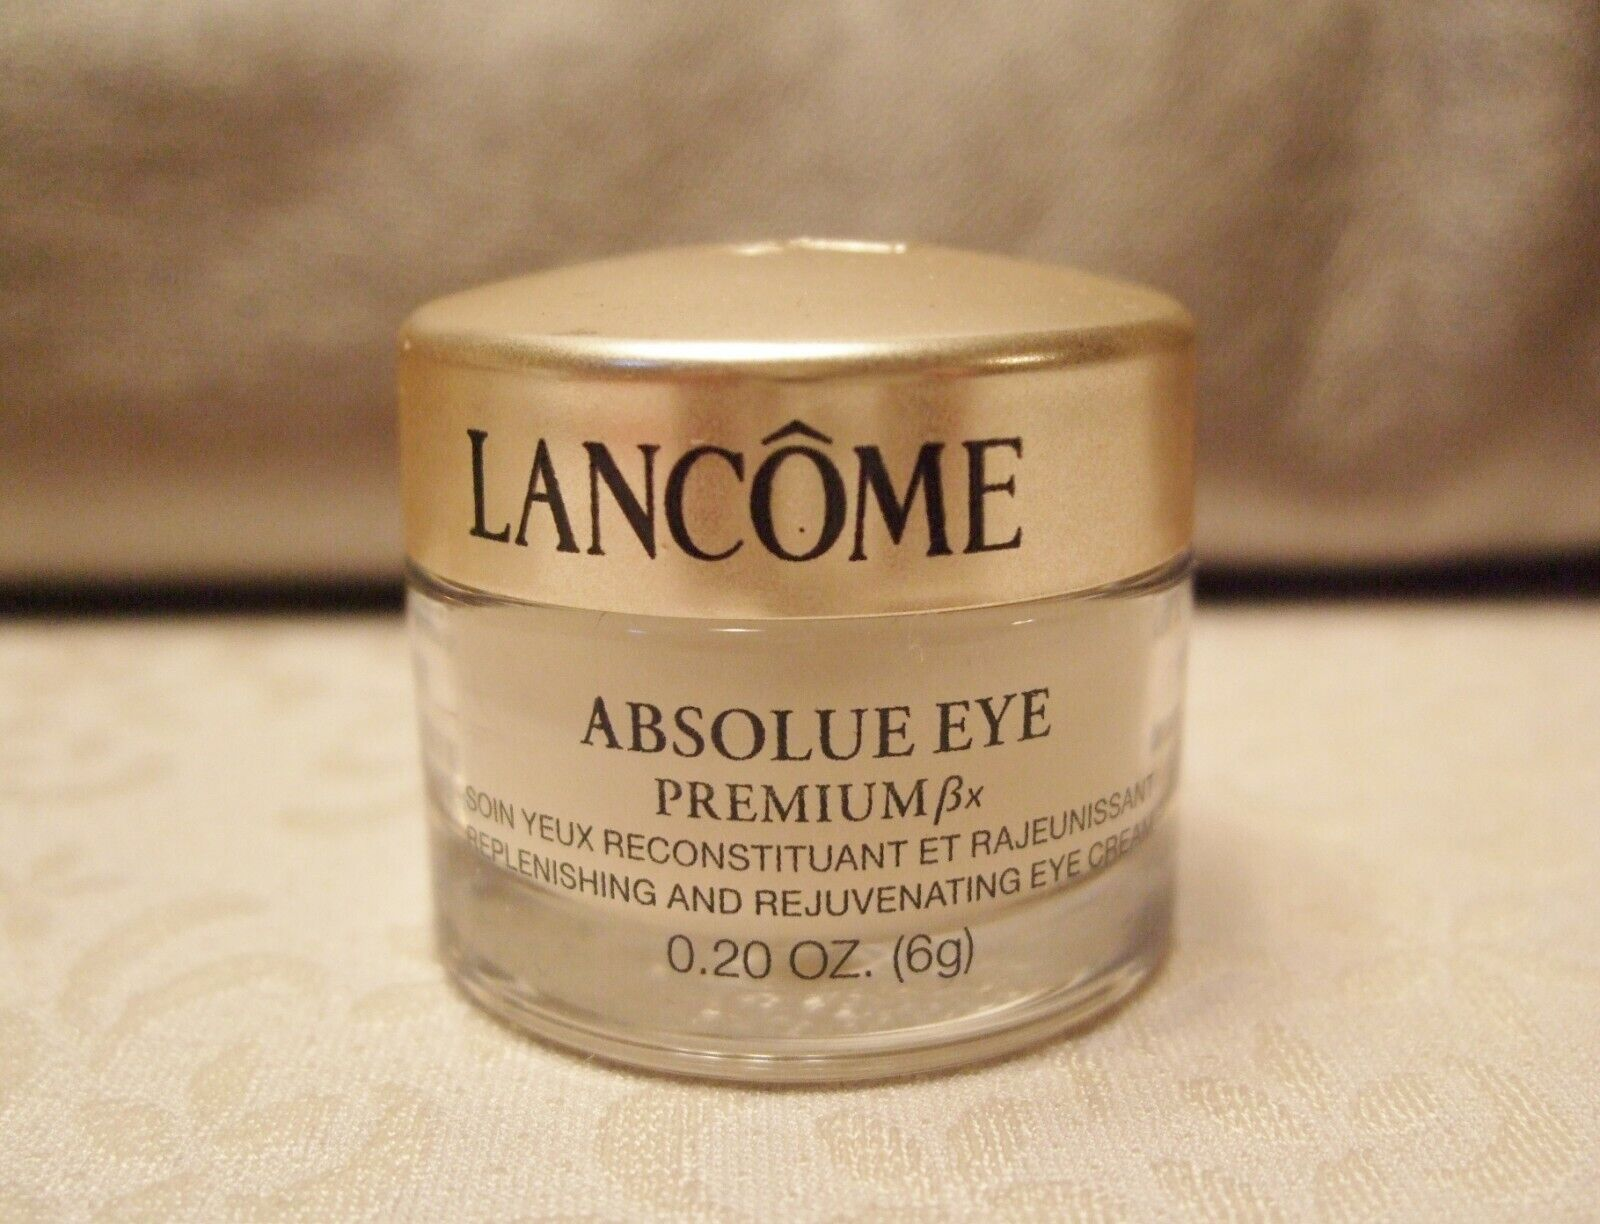 Lancome Absolue EYE Premium Replenishing Rejuvenating Eye Cream .20 Oz Trial Sz - $9.87